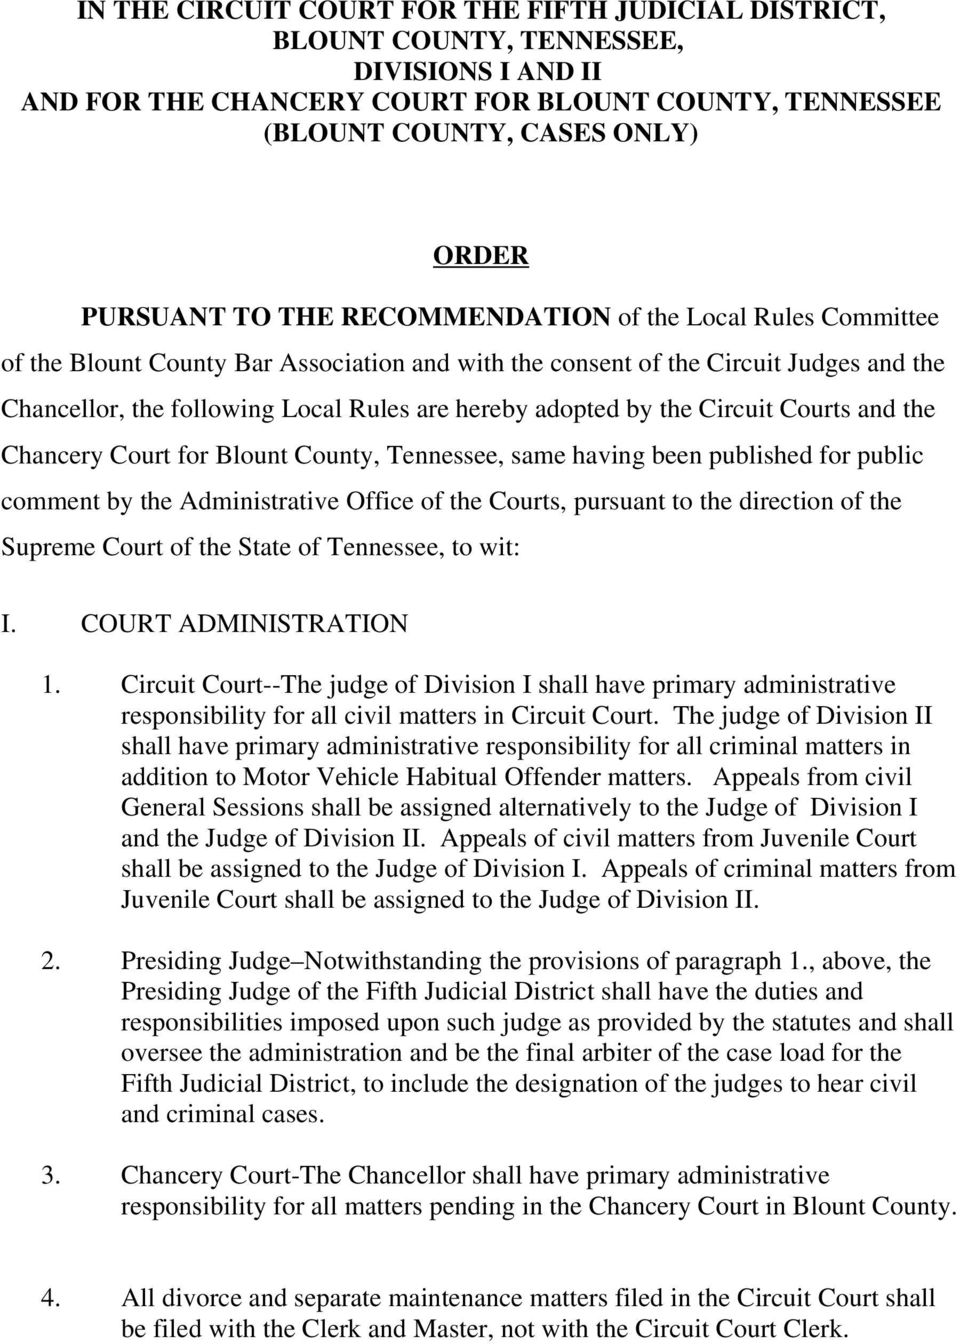 the Circuit Courts and the Chancery Court for Blount County, Tennessee, same having been published for public comment by the Administrative Office of the Courts, pursuant to the direction of the